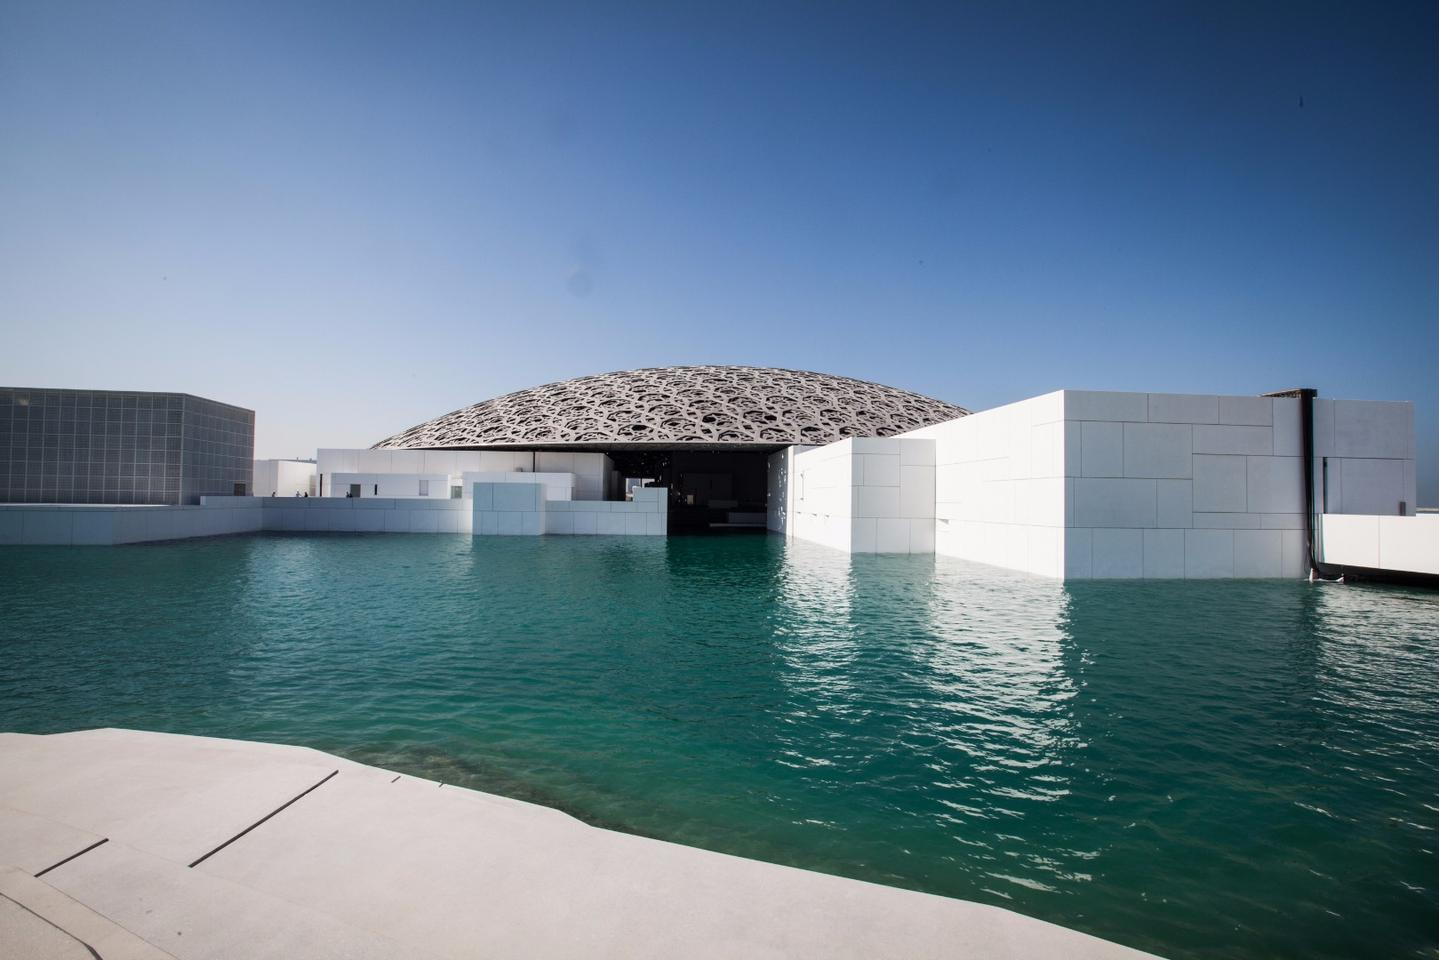 In photos: Seeing the light at the jaw-dropping Louvre Abu Dhabi